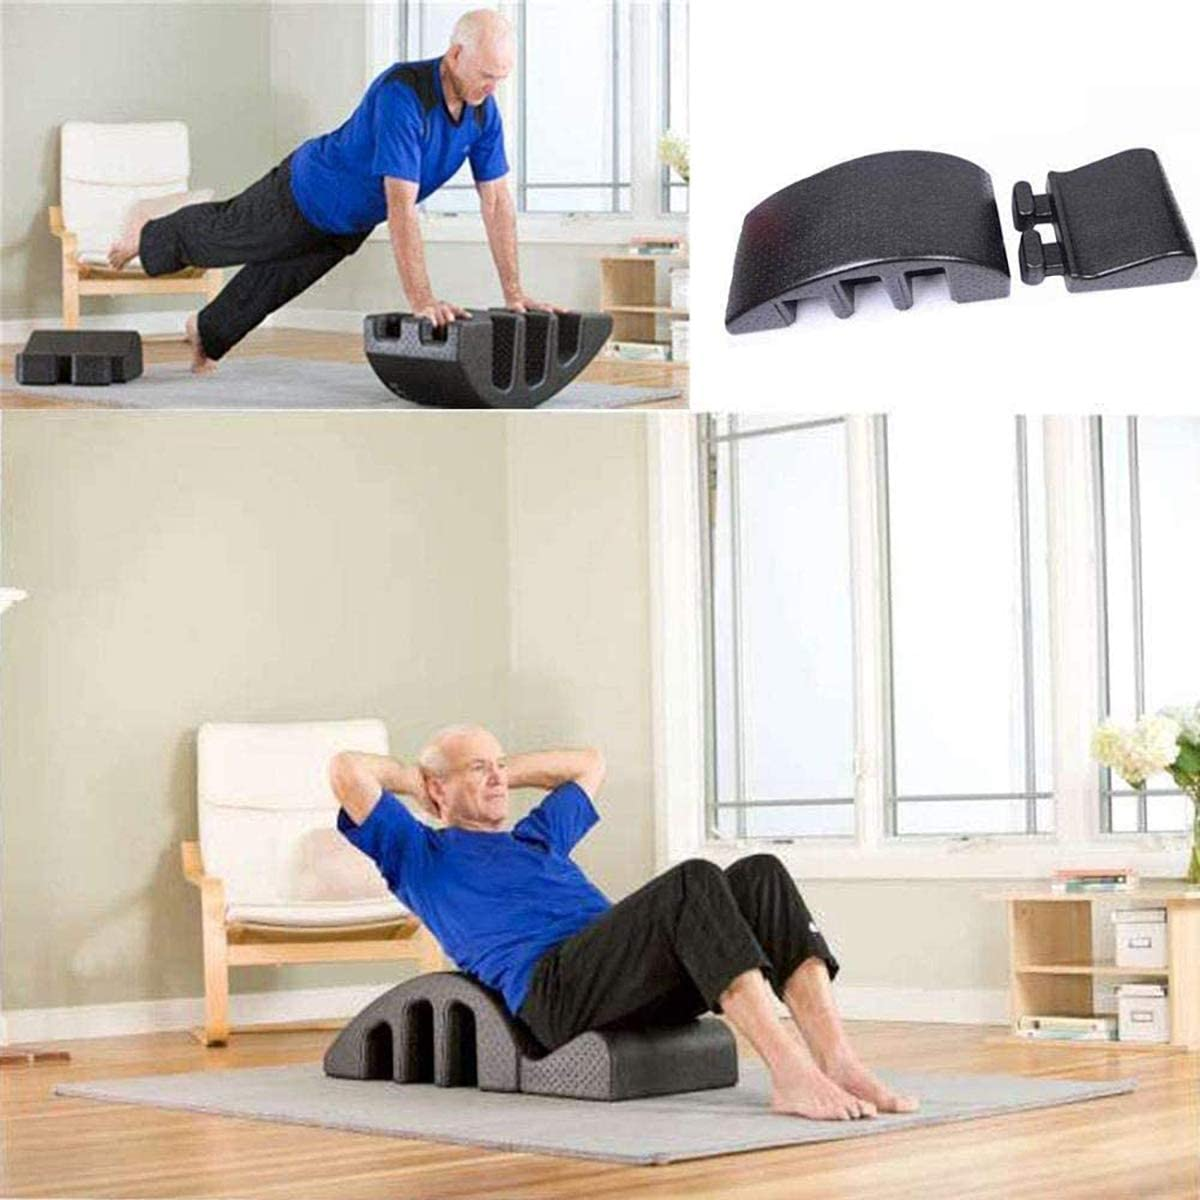 Pilates Reformer Back Pain Relief Pilates Arc Pilates Step Bucket Back Curve Health Alignment of The Spine Large Spine Yoga Equipment Massage Bed